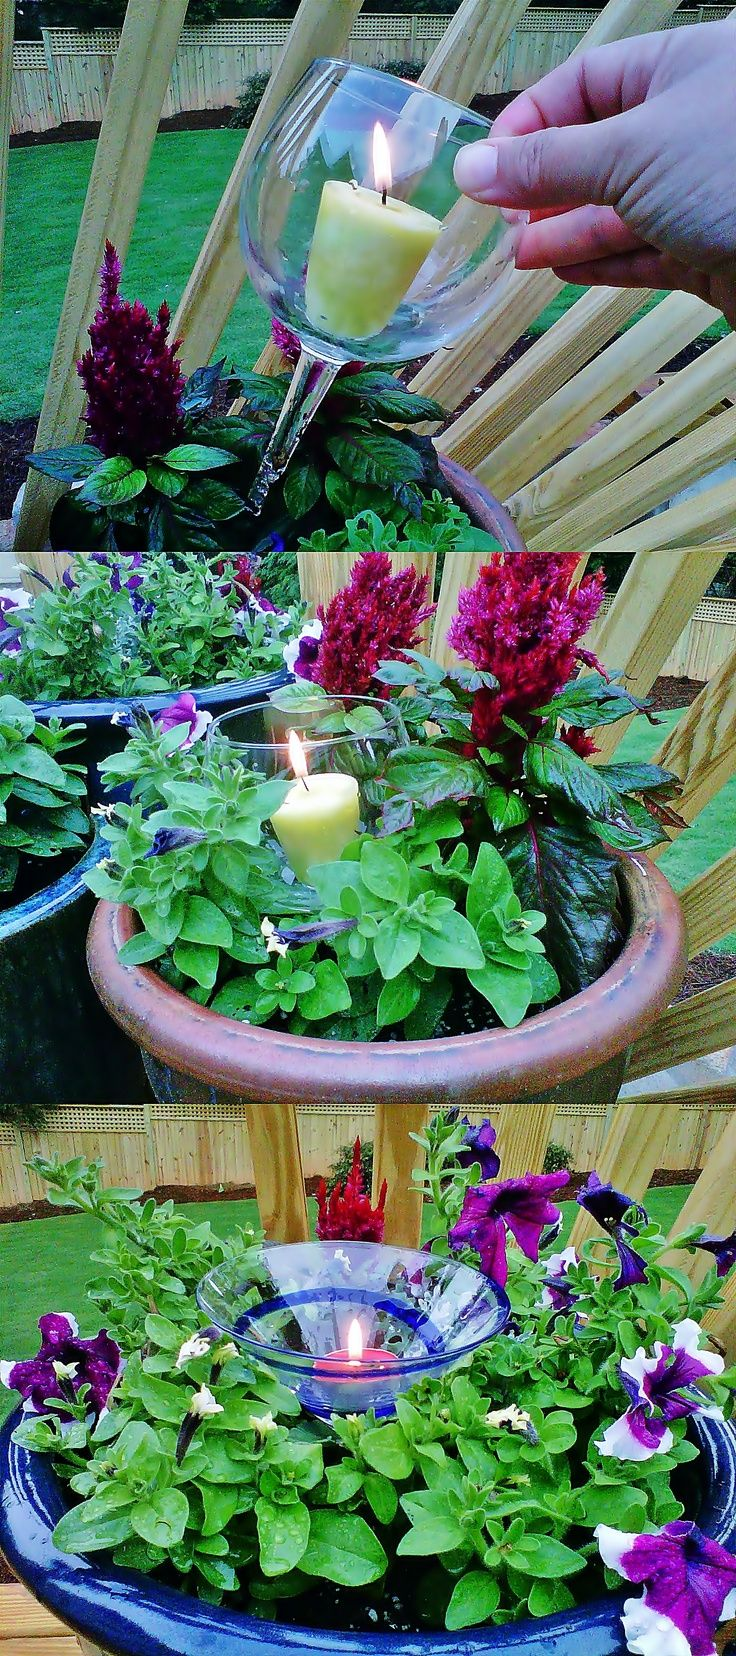 Instead of throwing out broken stem-ware, pop a candle in it and stick it down in a plant. Beautiful at night and you can use citronella candles to keep bugs away!!